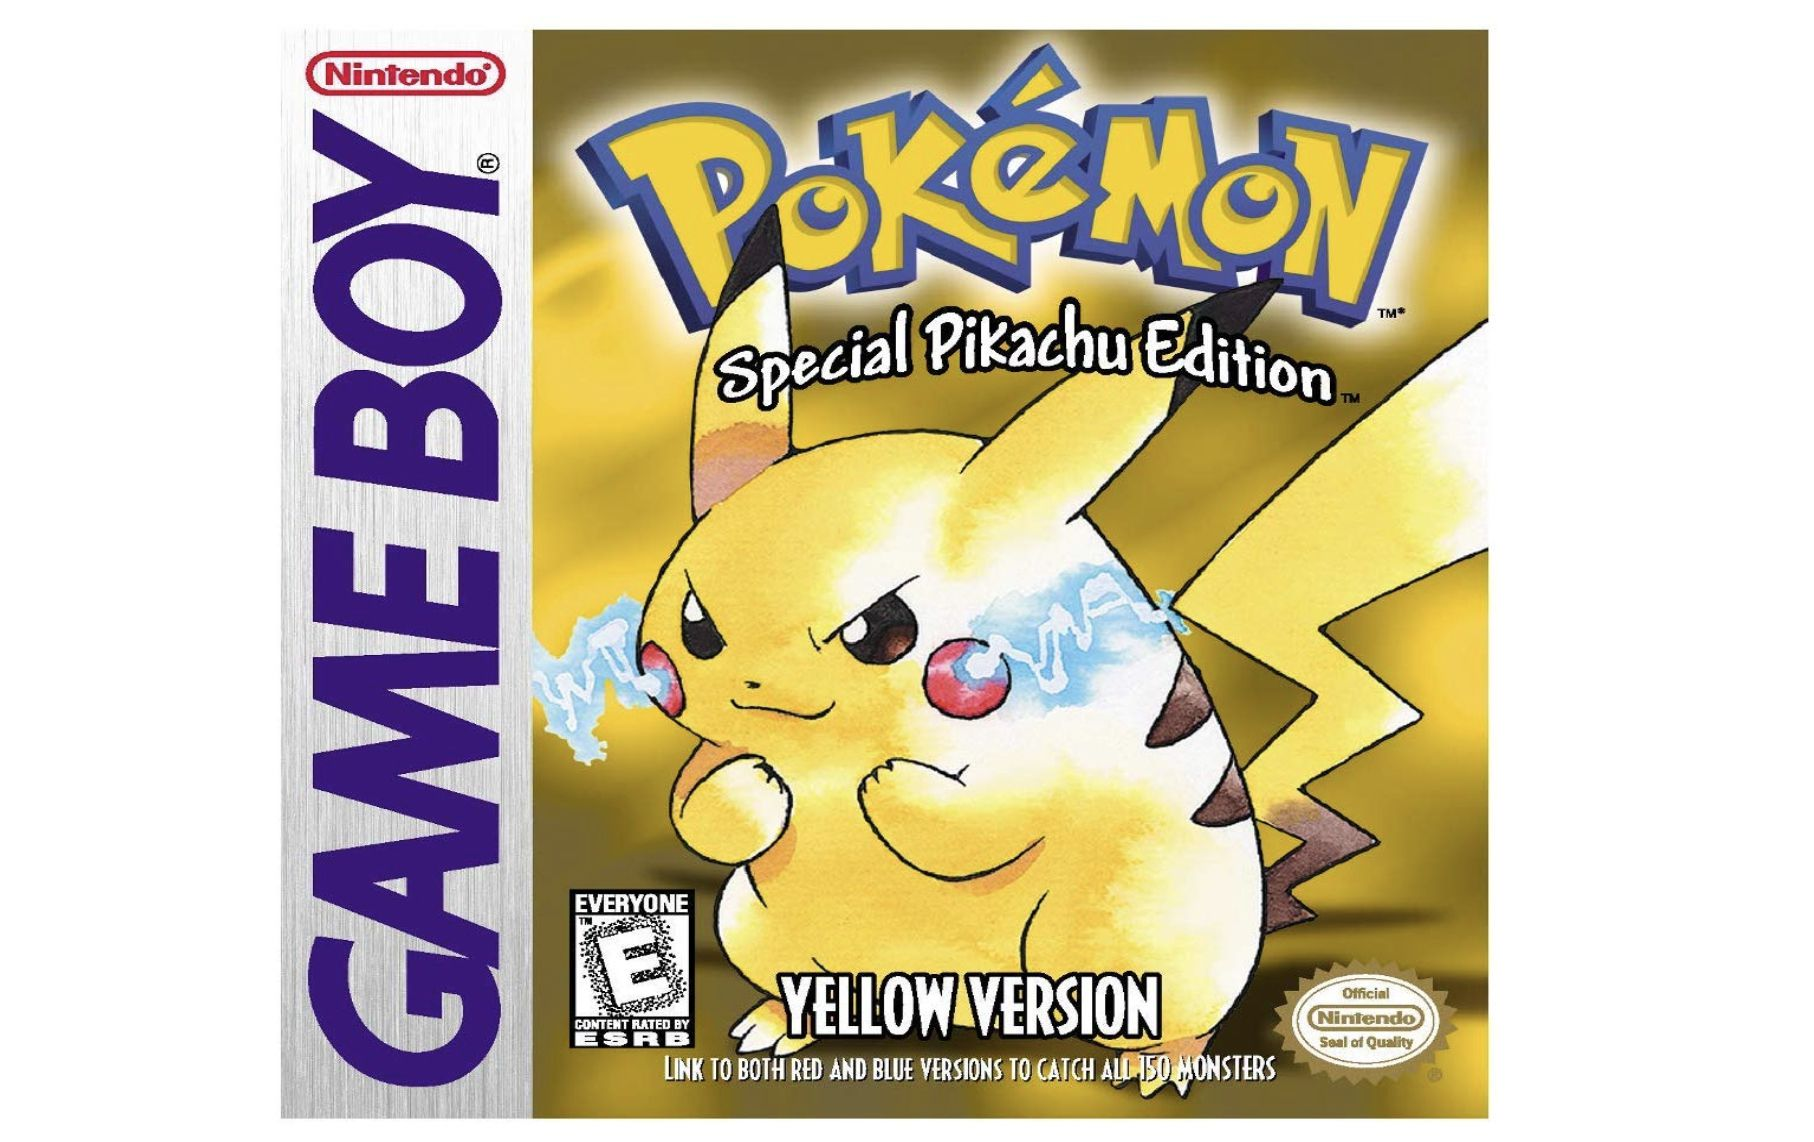 Pokemon Red, Blue and Yellow: How to Obtain All HMs